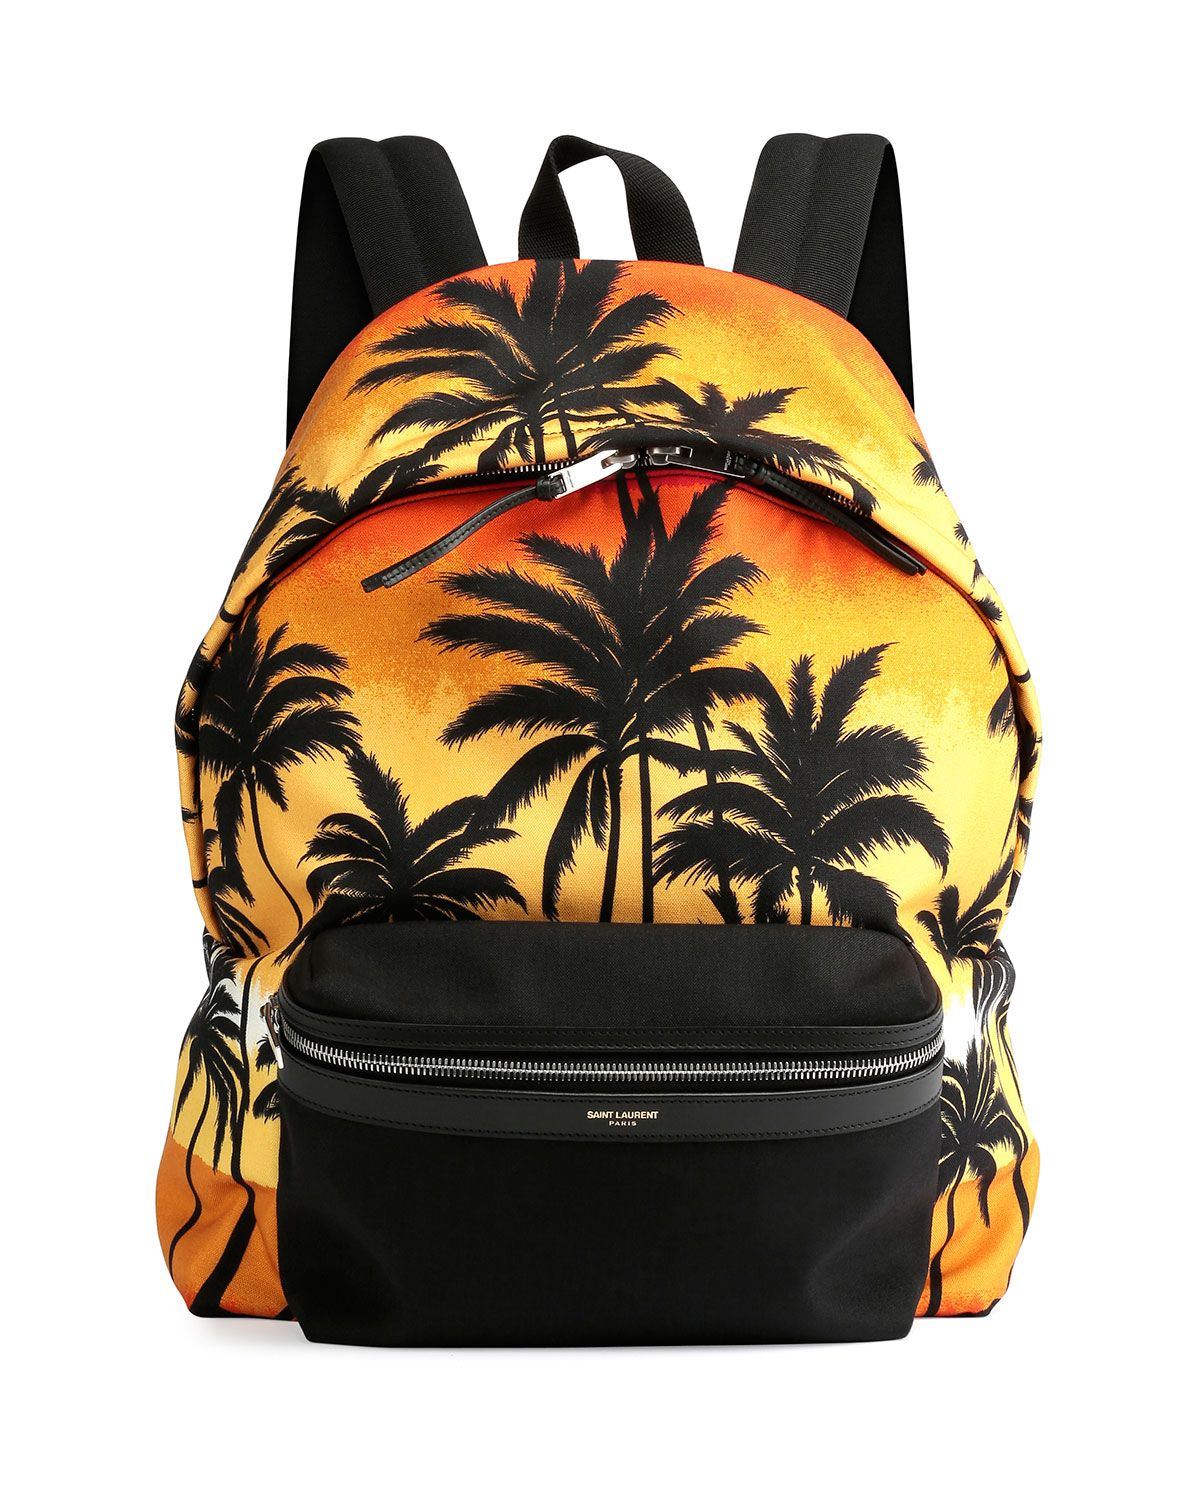 2d334158a5 Yves Saint Laurent Palm Tree Printed Backpack